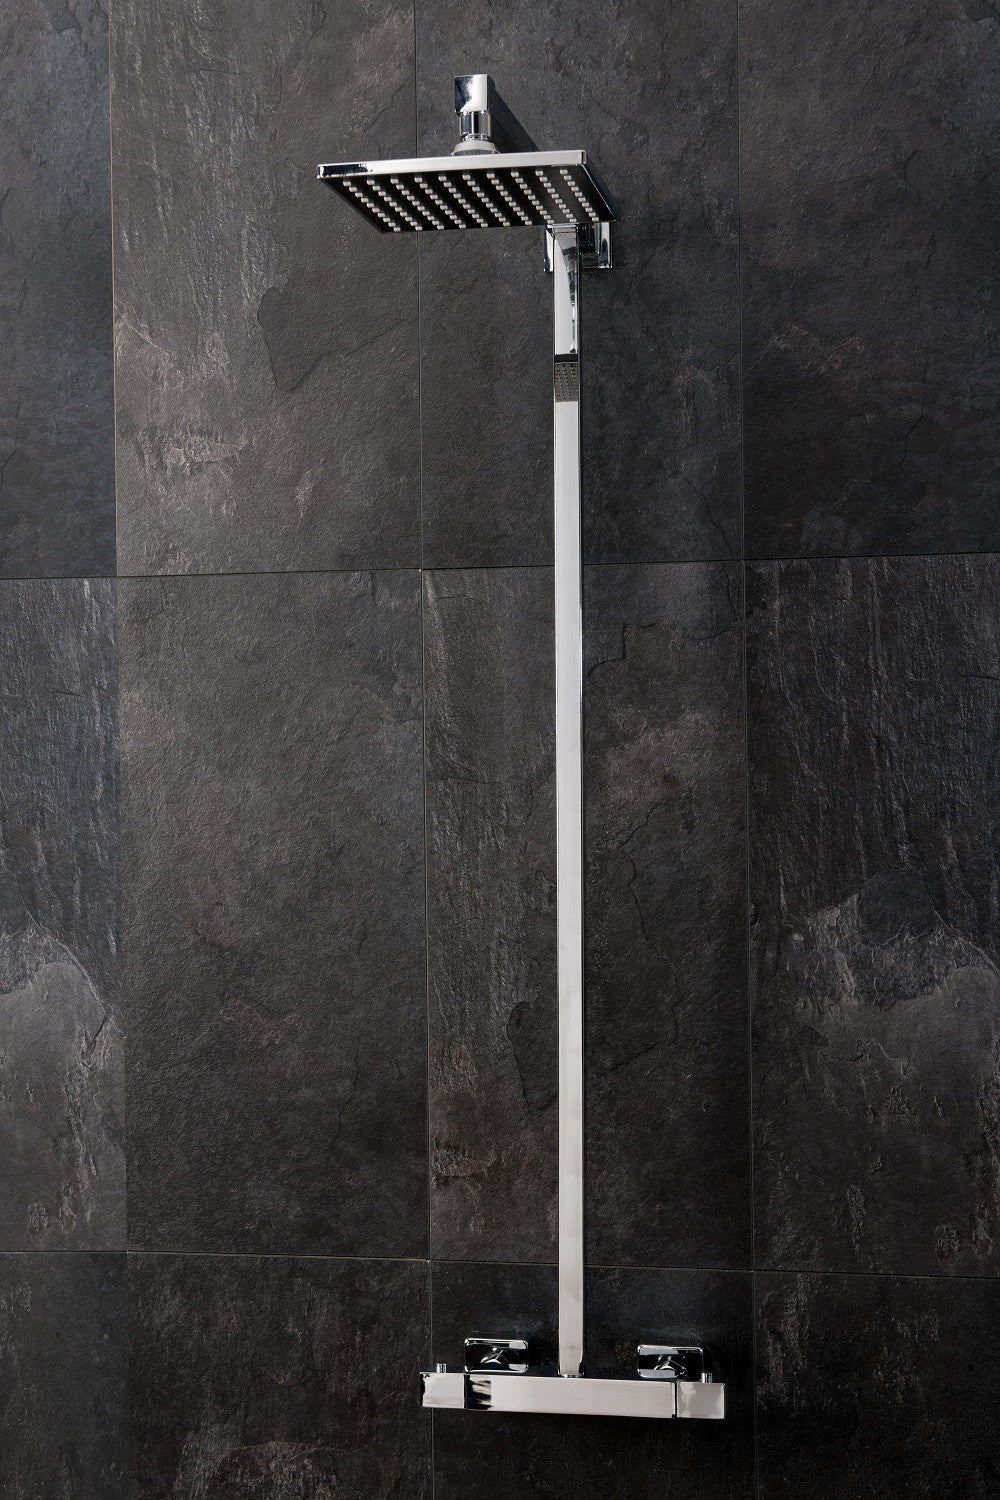 Allen Thermostatic Bar Shower With Rigid Riser And Overhead Rain Shower